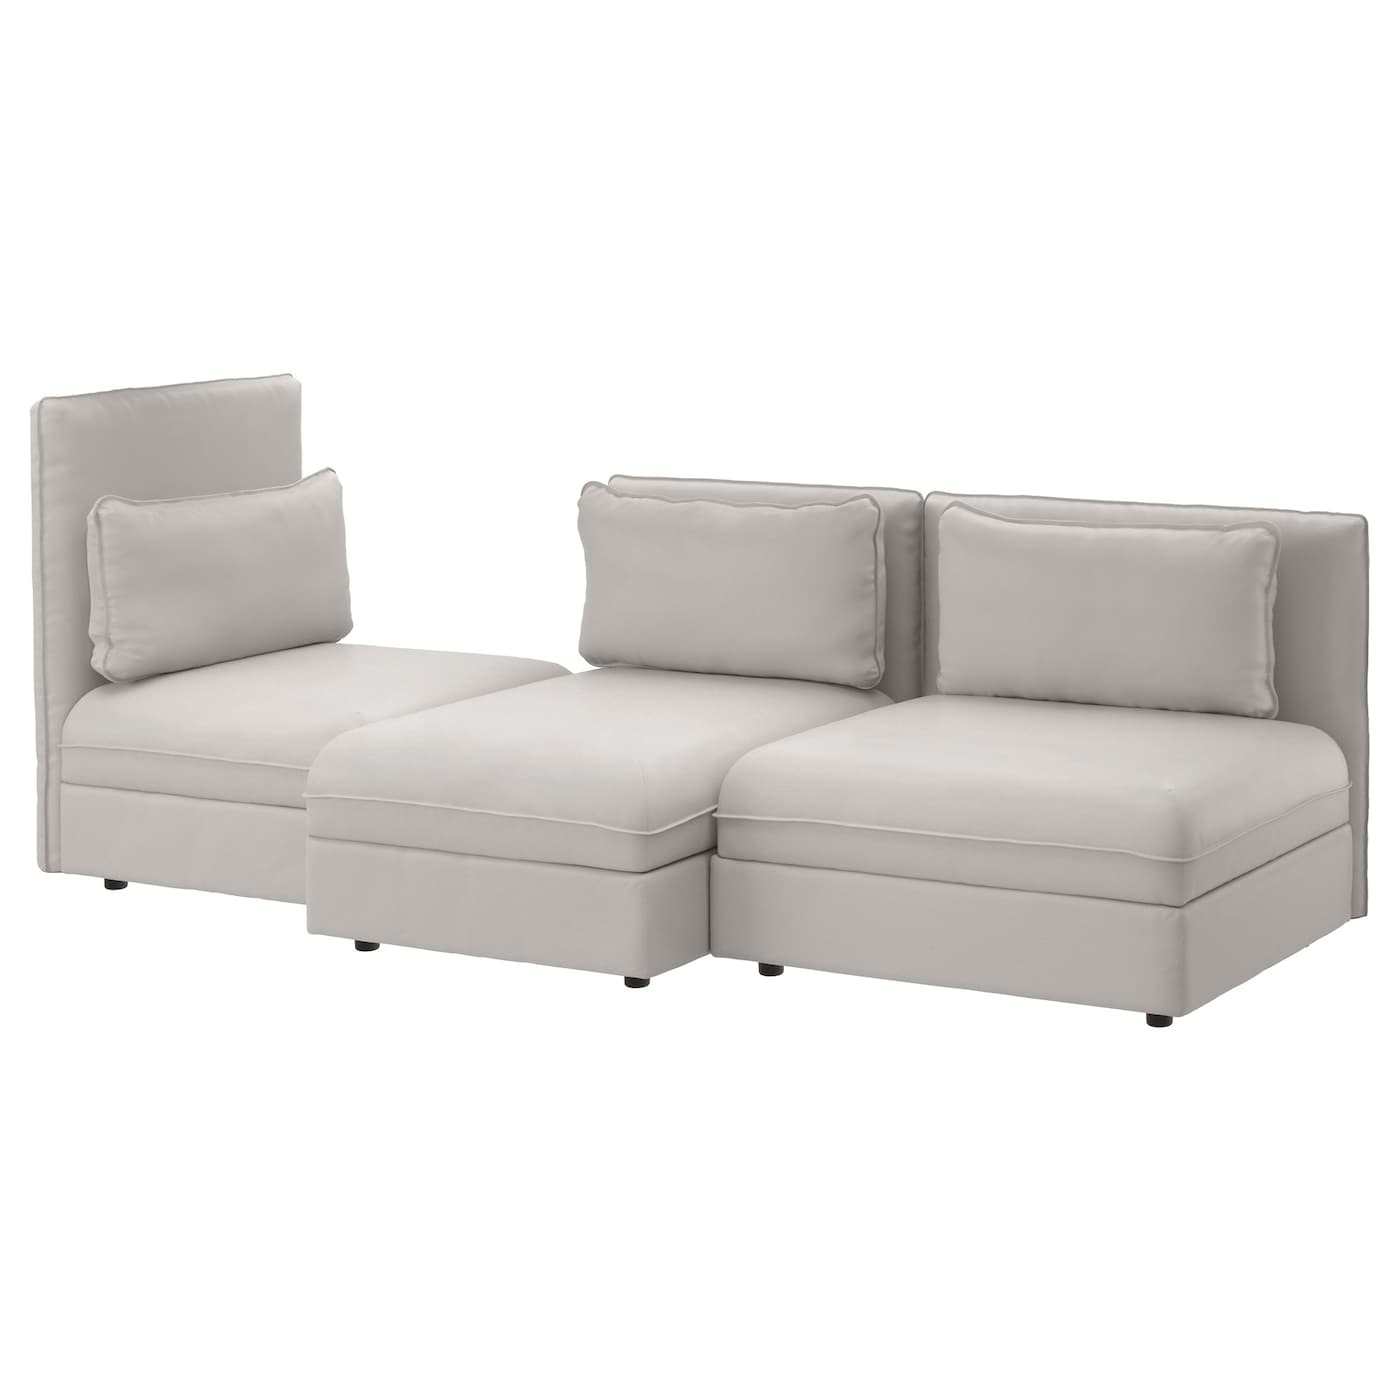 IKEA VALLENTUNA 3 Seat Sofa 10 Year Guarantee. Read About The Terms In The